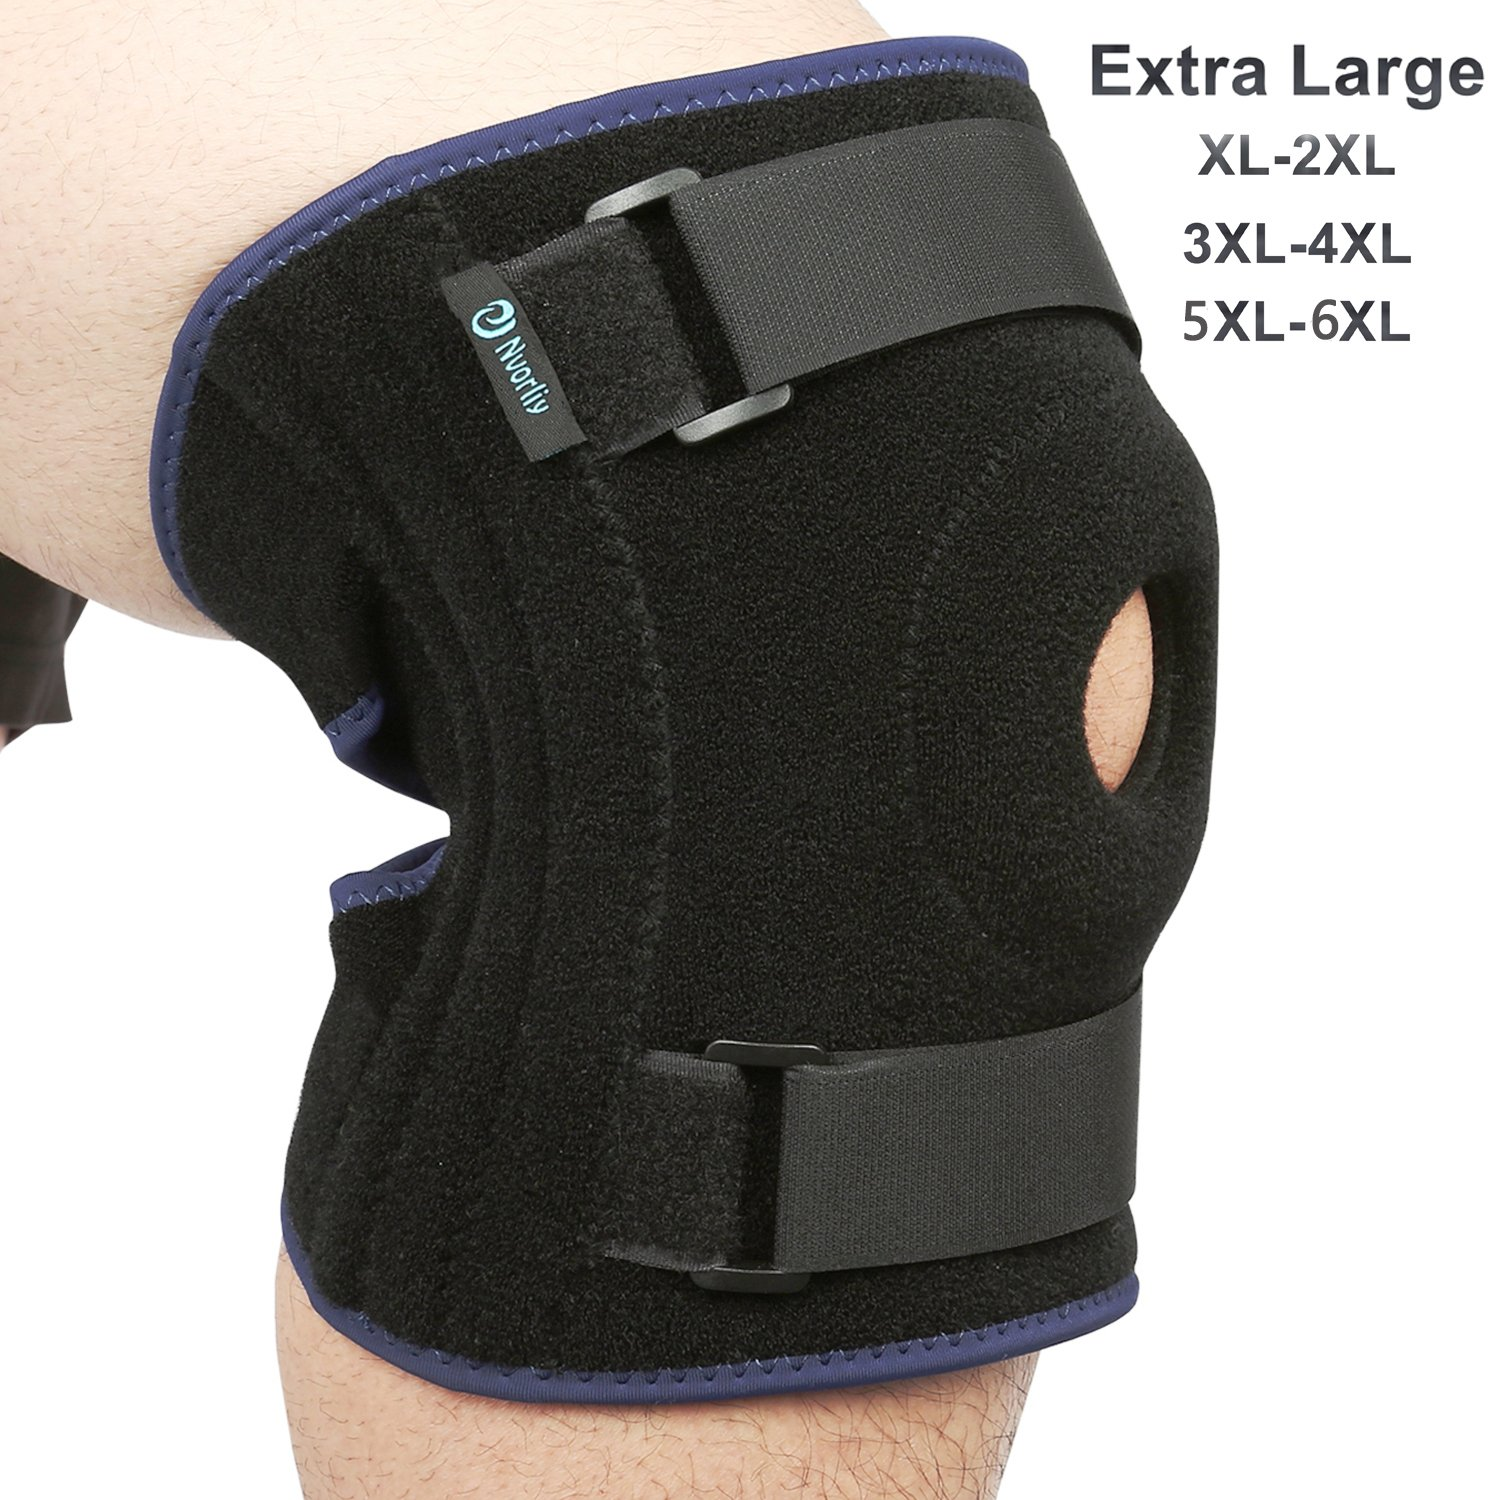 Nvorliy Plus Size Knee Brace XL 2XL Extra Large Open-Patella Stabilizer Breathable Neoprene Support for Arthritis, Acl, Running, Pain Relief, Meniscus Tear, Post-Surgery Recovery, Fit Men and Women